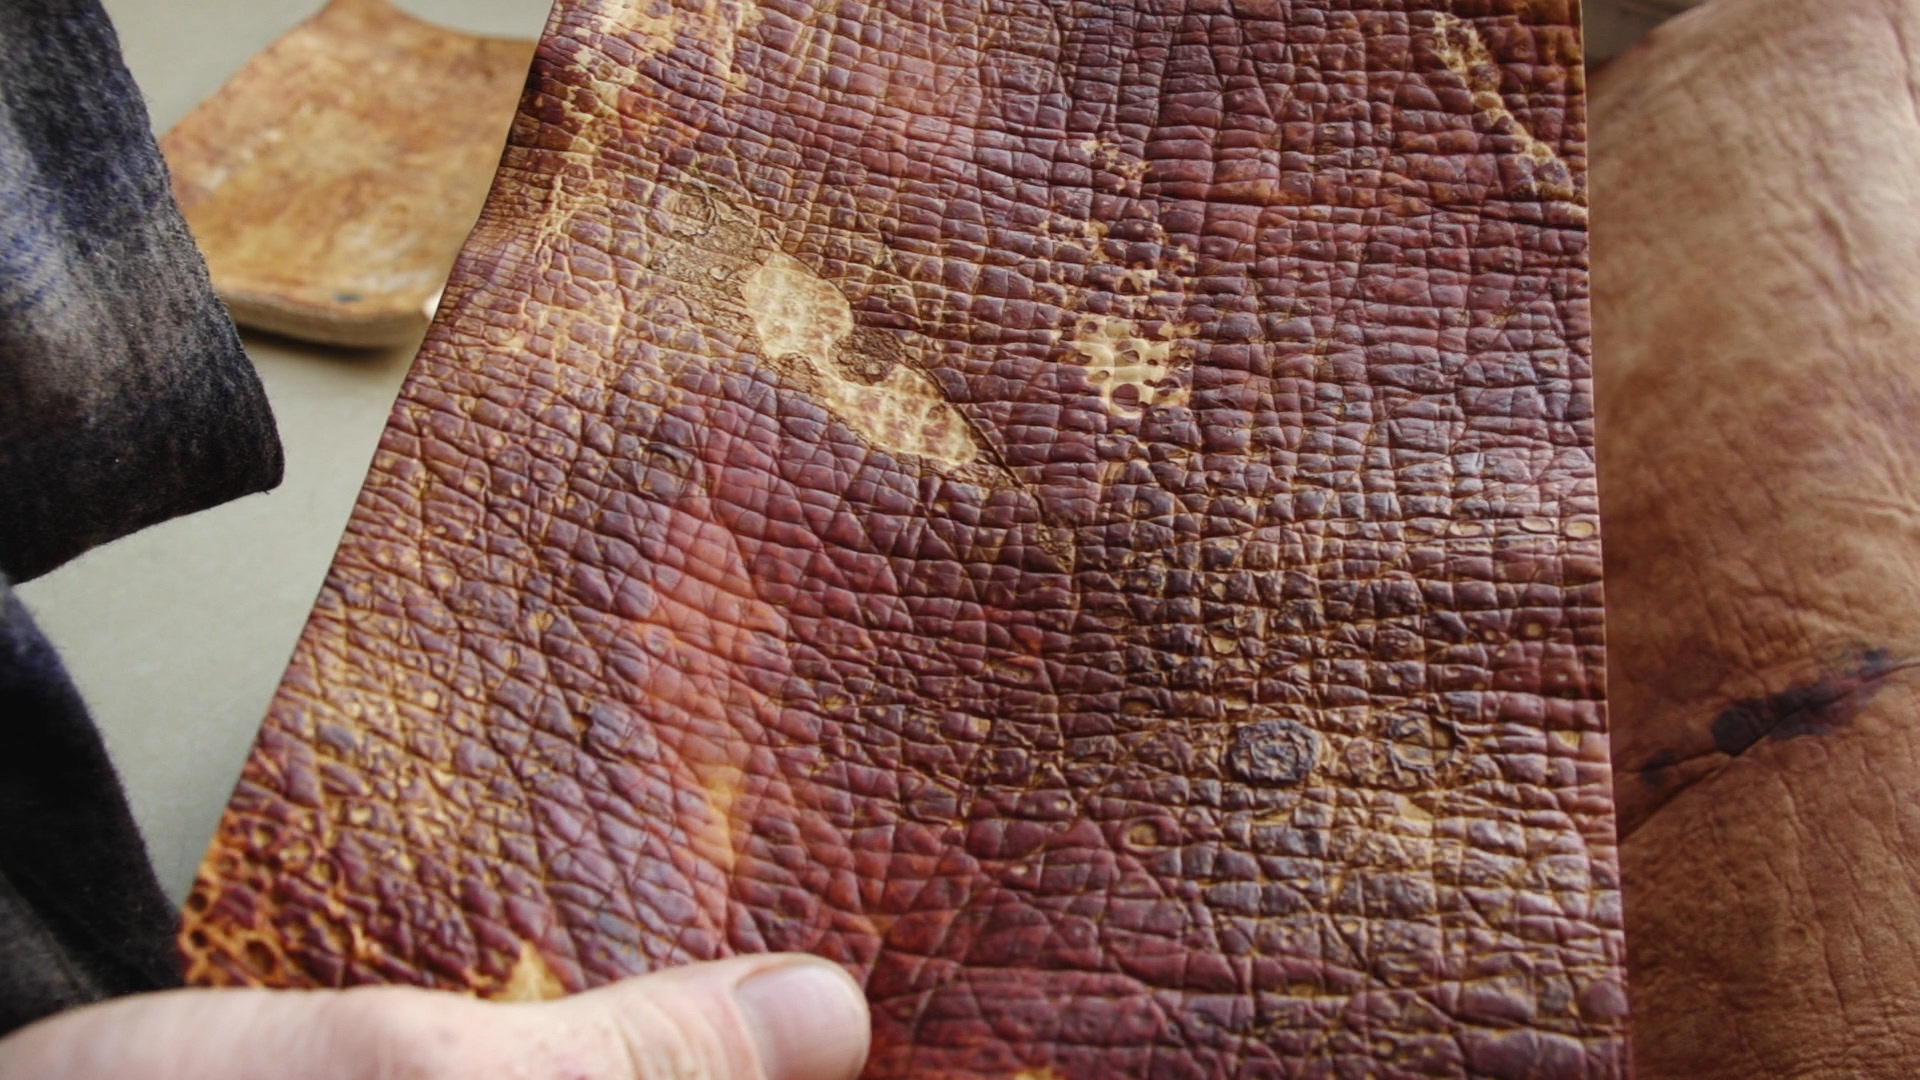 What Is Leather Made Of >> The Fungi In Your Future